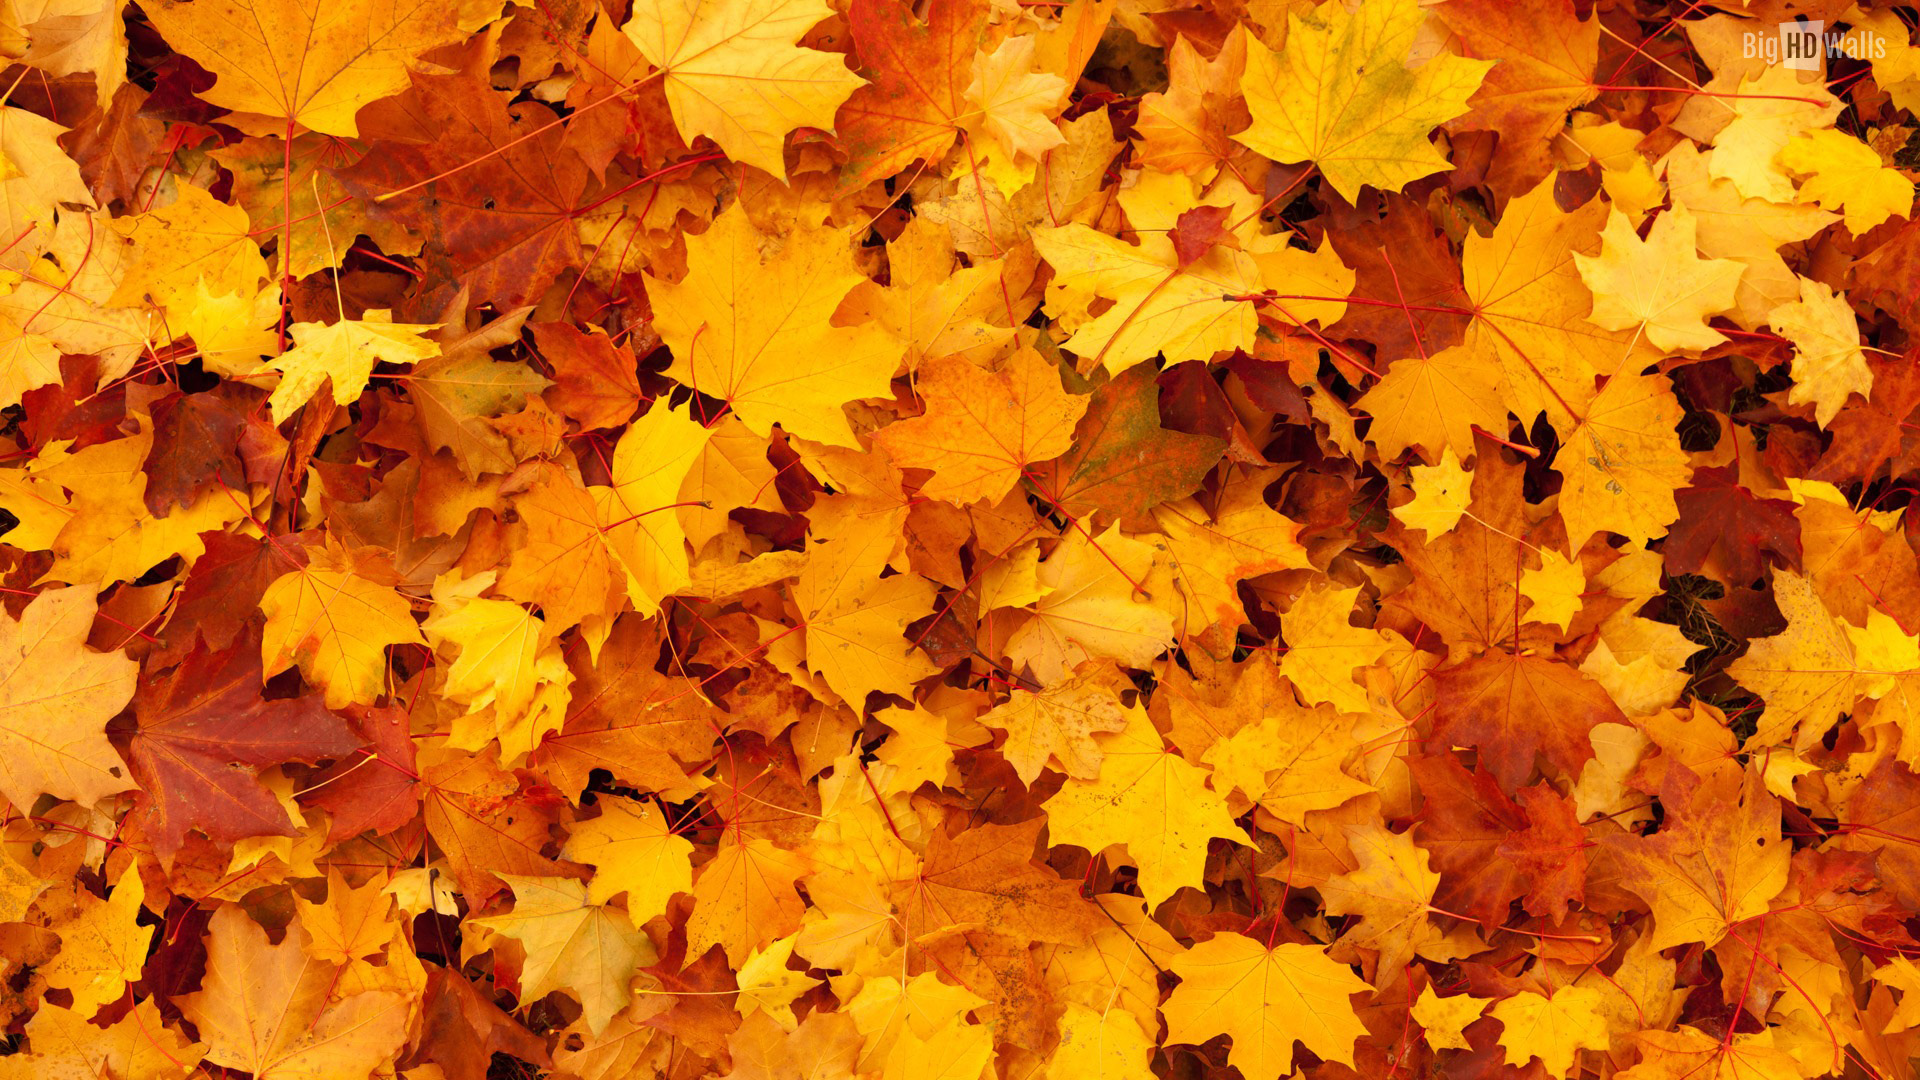 Fall thanksgiving wallpaper wallpapersafari as the leaves turn orange yellow and gold it reminds us of autumn 1920x1080 voltagebd Gallery